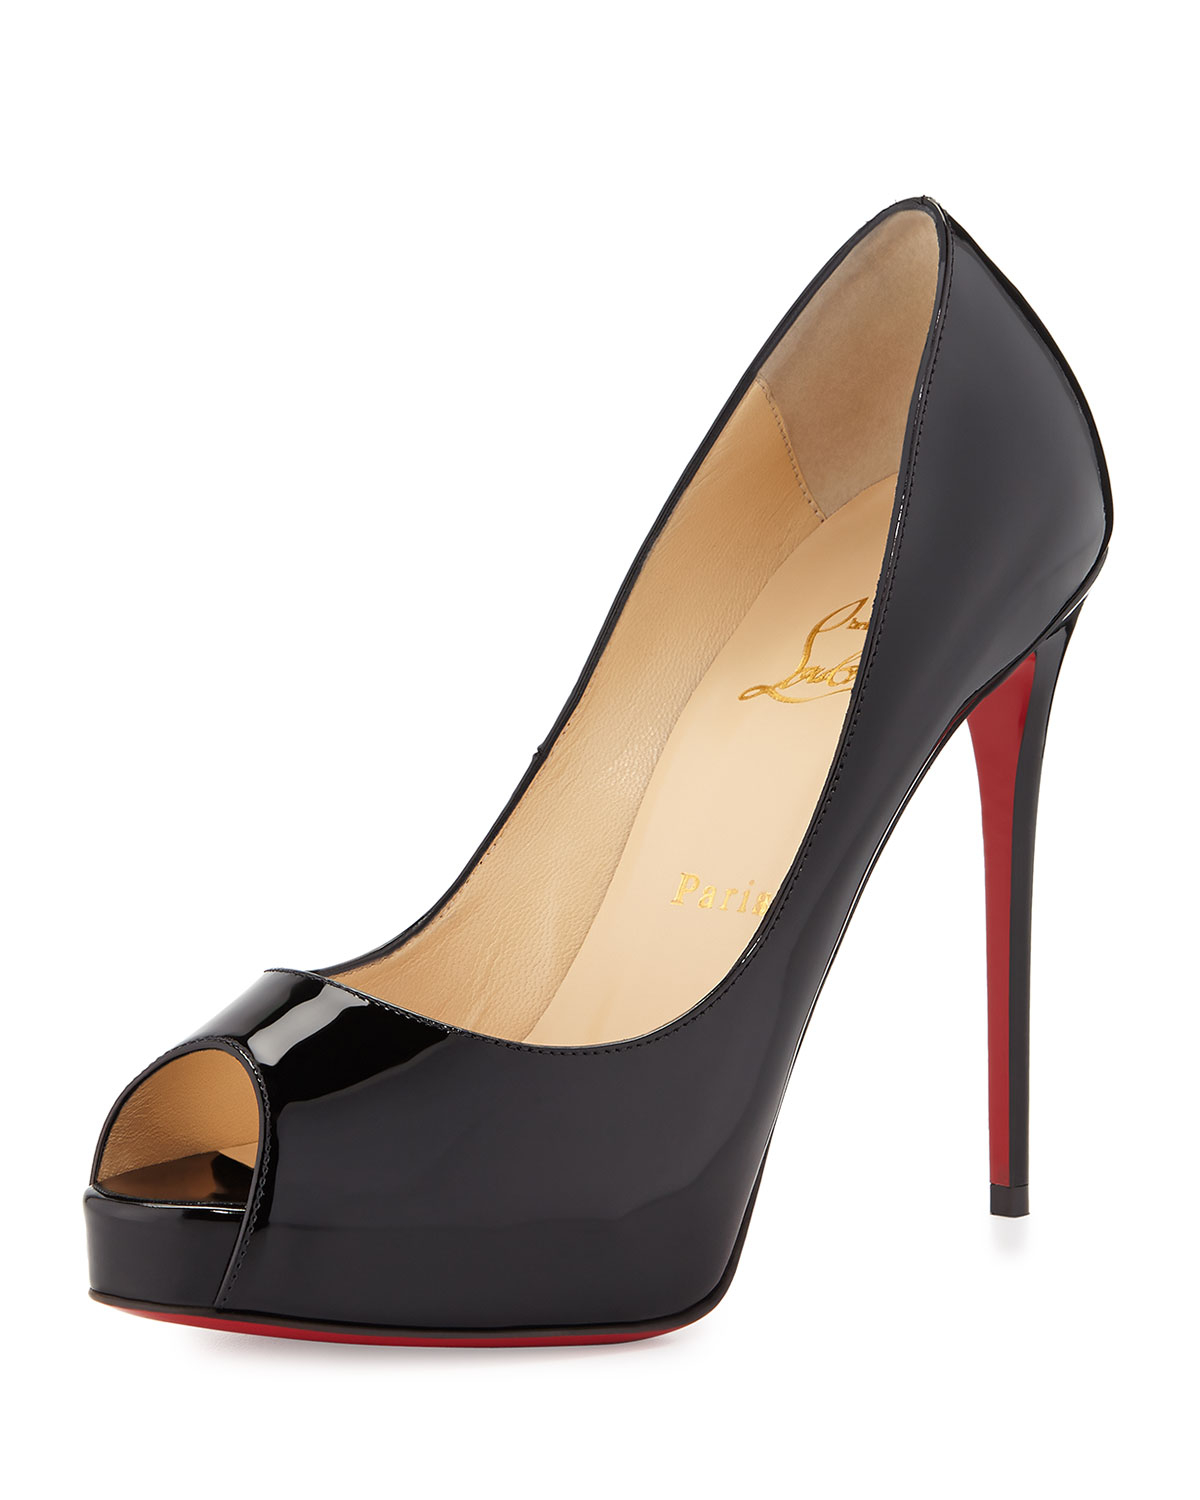 Black Patent Leather Shoes With Red Soles